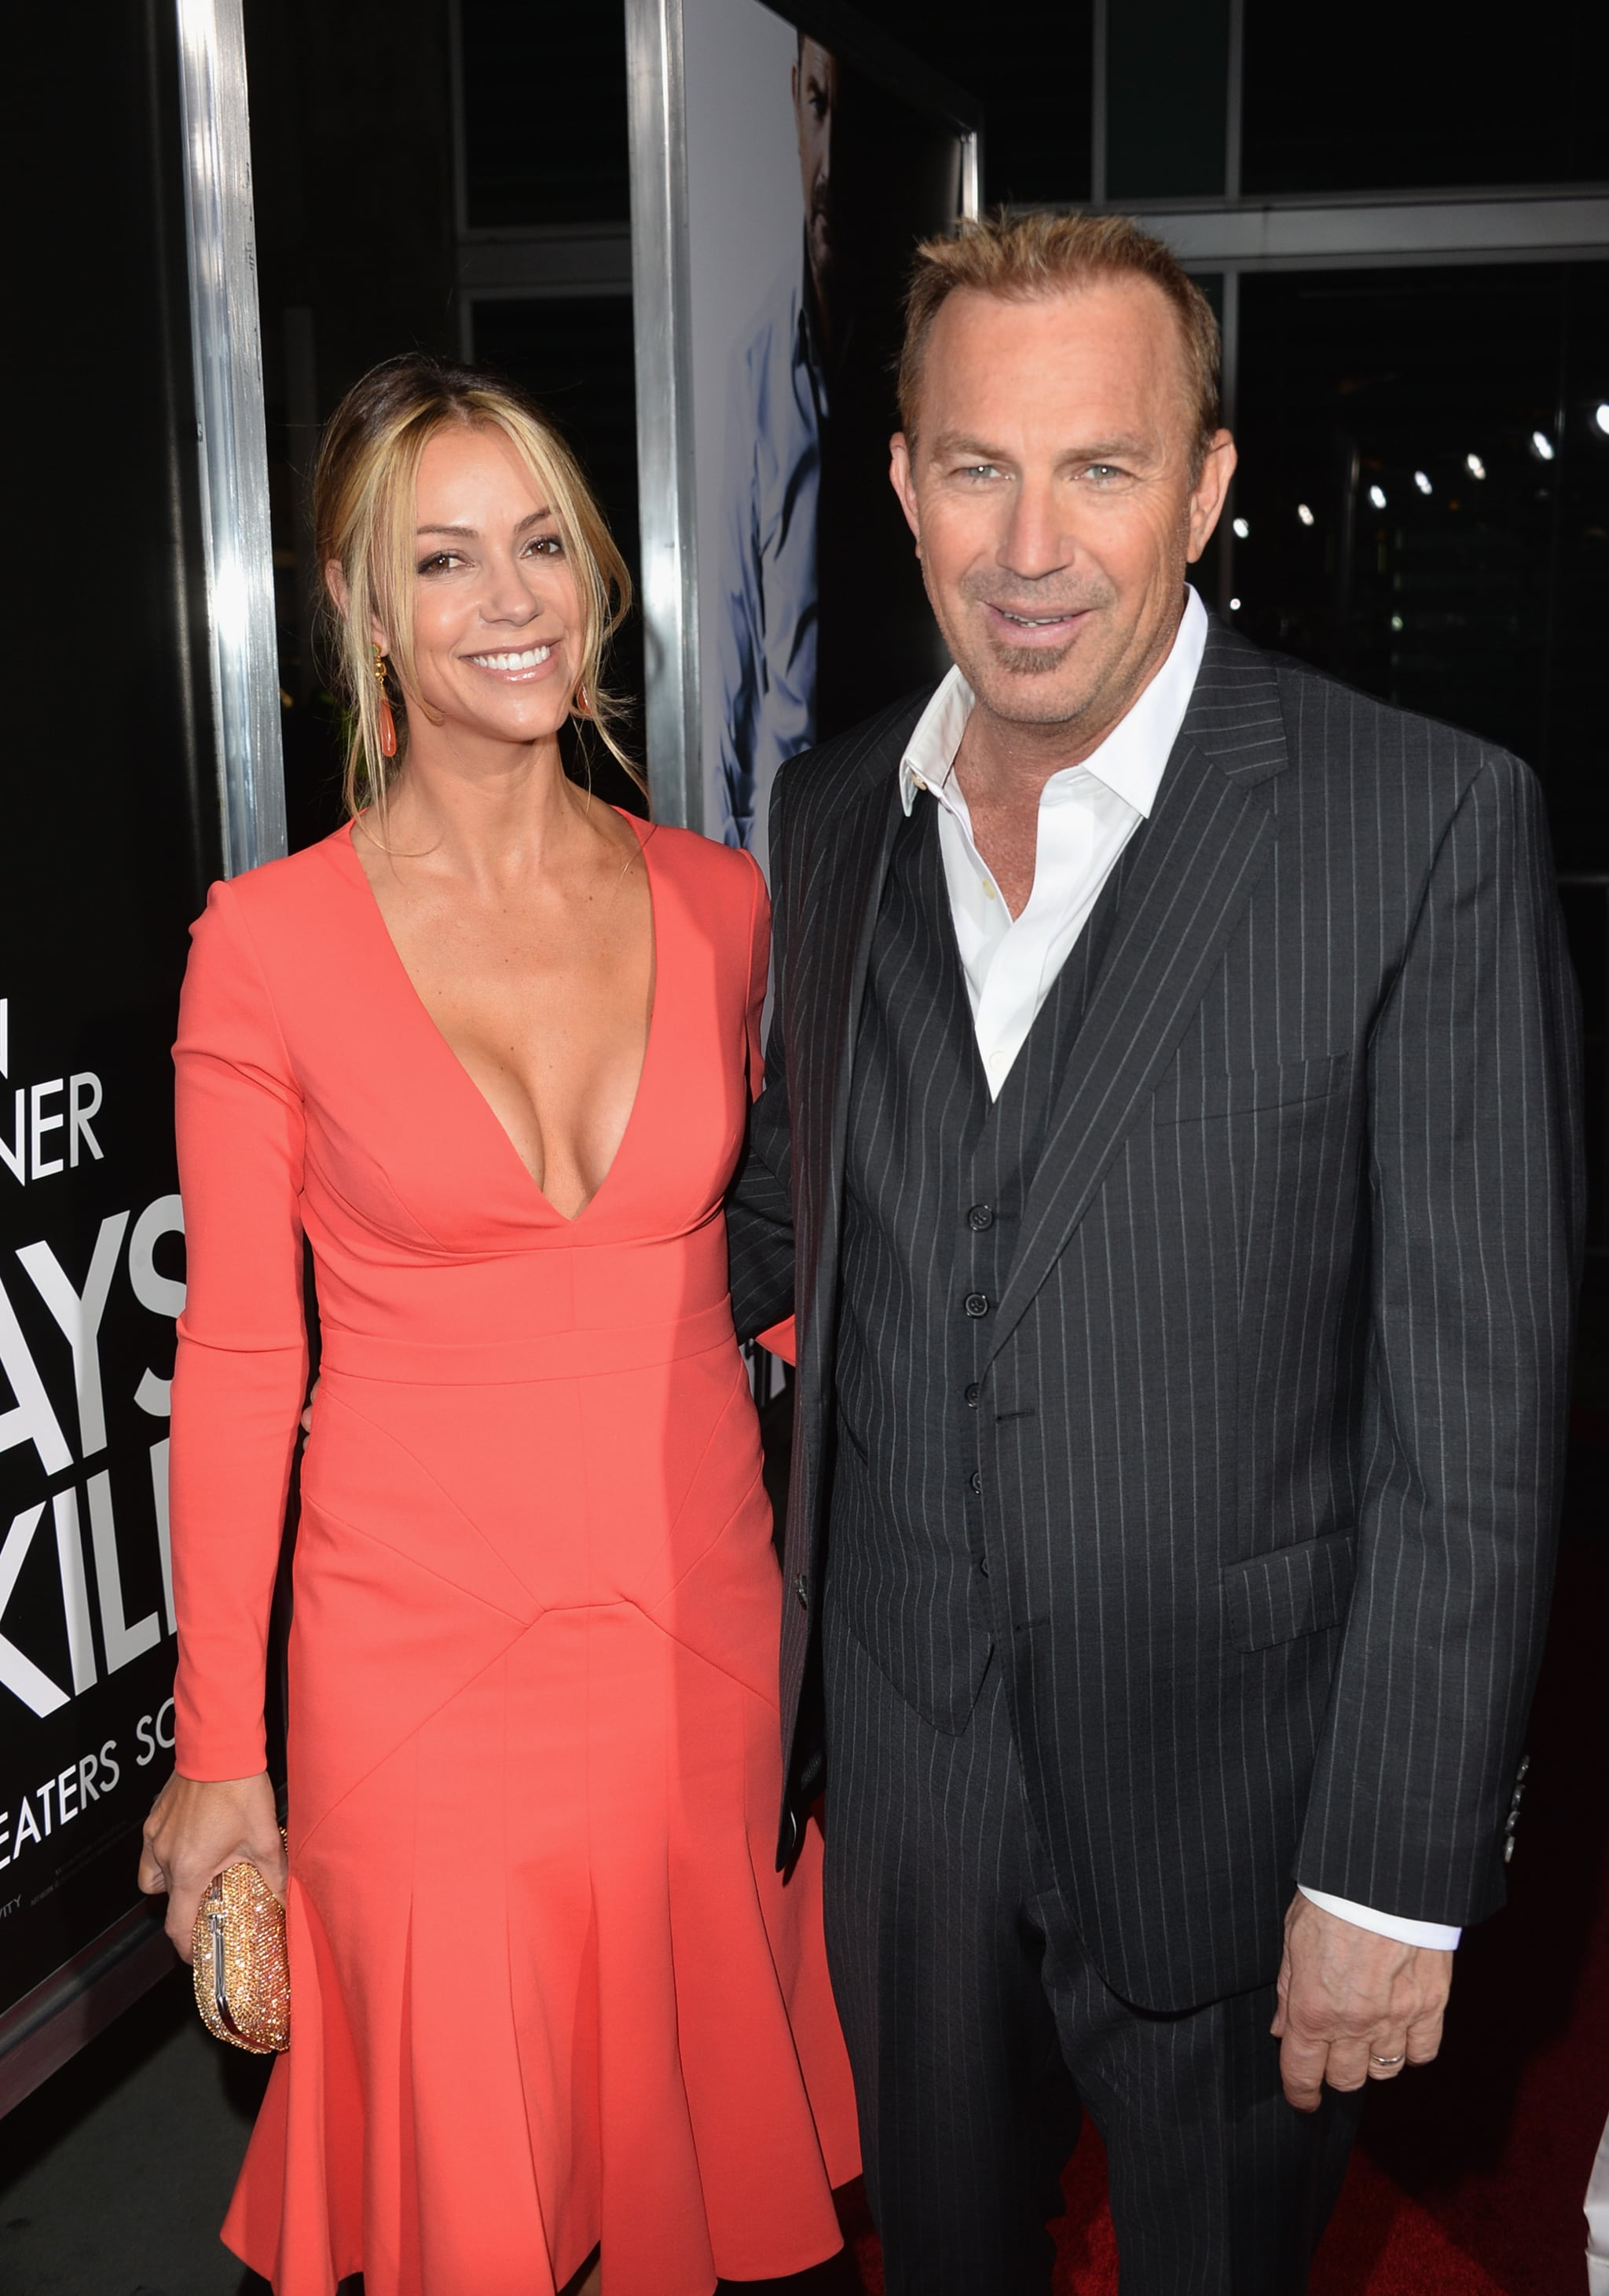 Kevin Costner and his wife, Christine Baumgartner, also turned the | Premiere PDA! Johnny and Amber Heat Up the Red Carpet | POPSUGAR Celebrity Photo 4